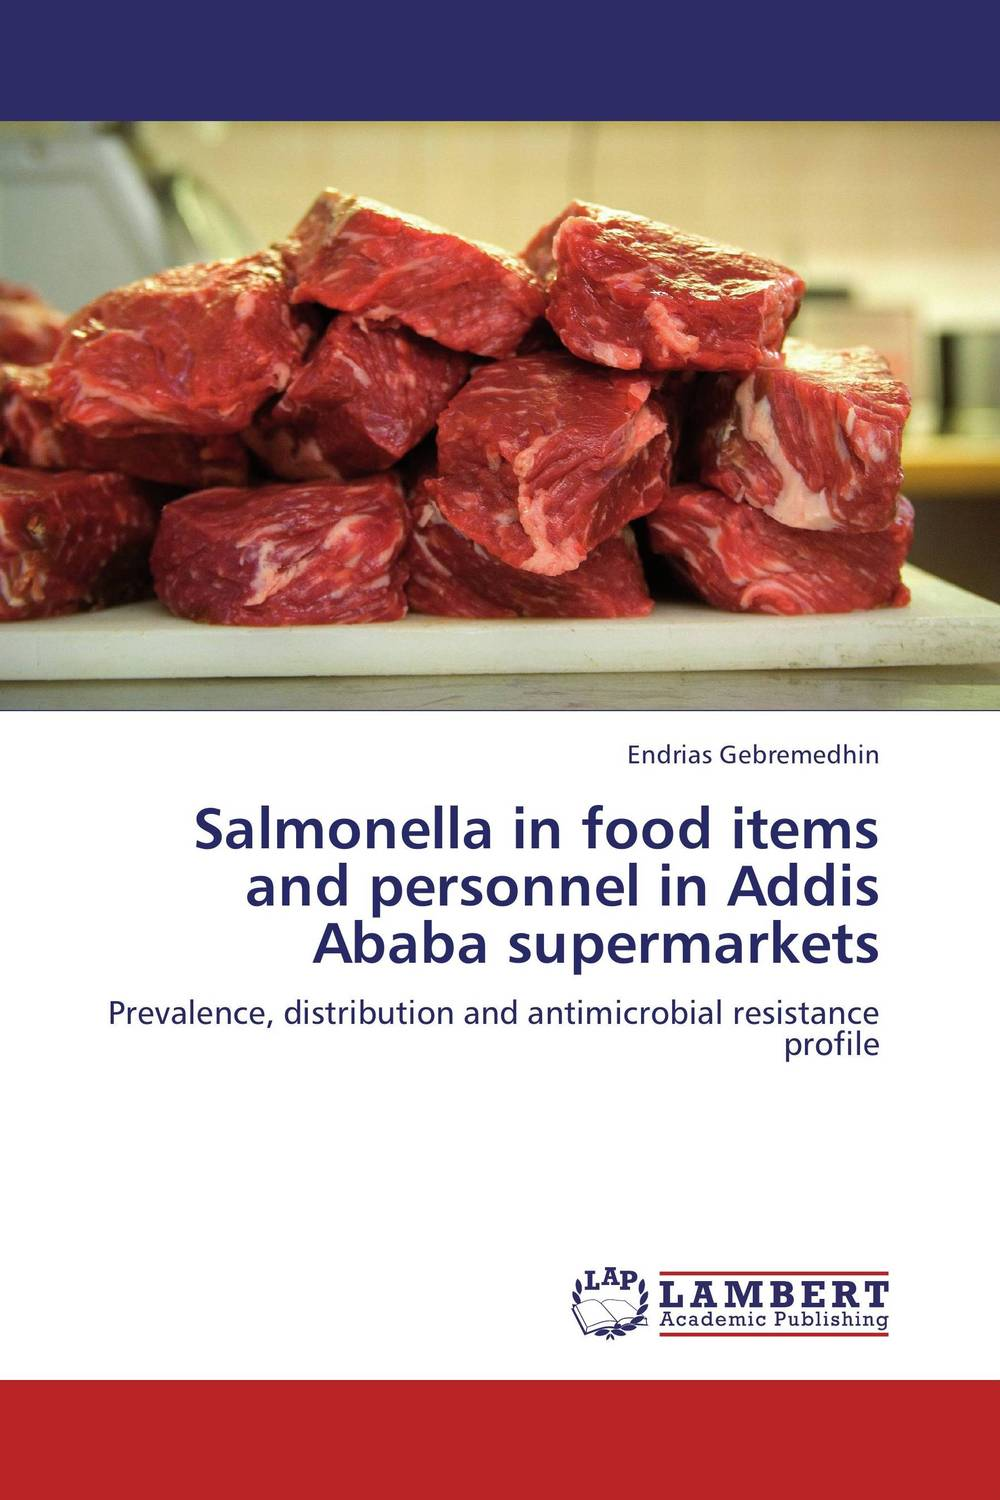 Salmonella in food items and personnel in Addis Ababa supermarkets polymorphisms at candidate genes for disease resistance in chicken